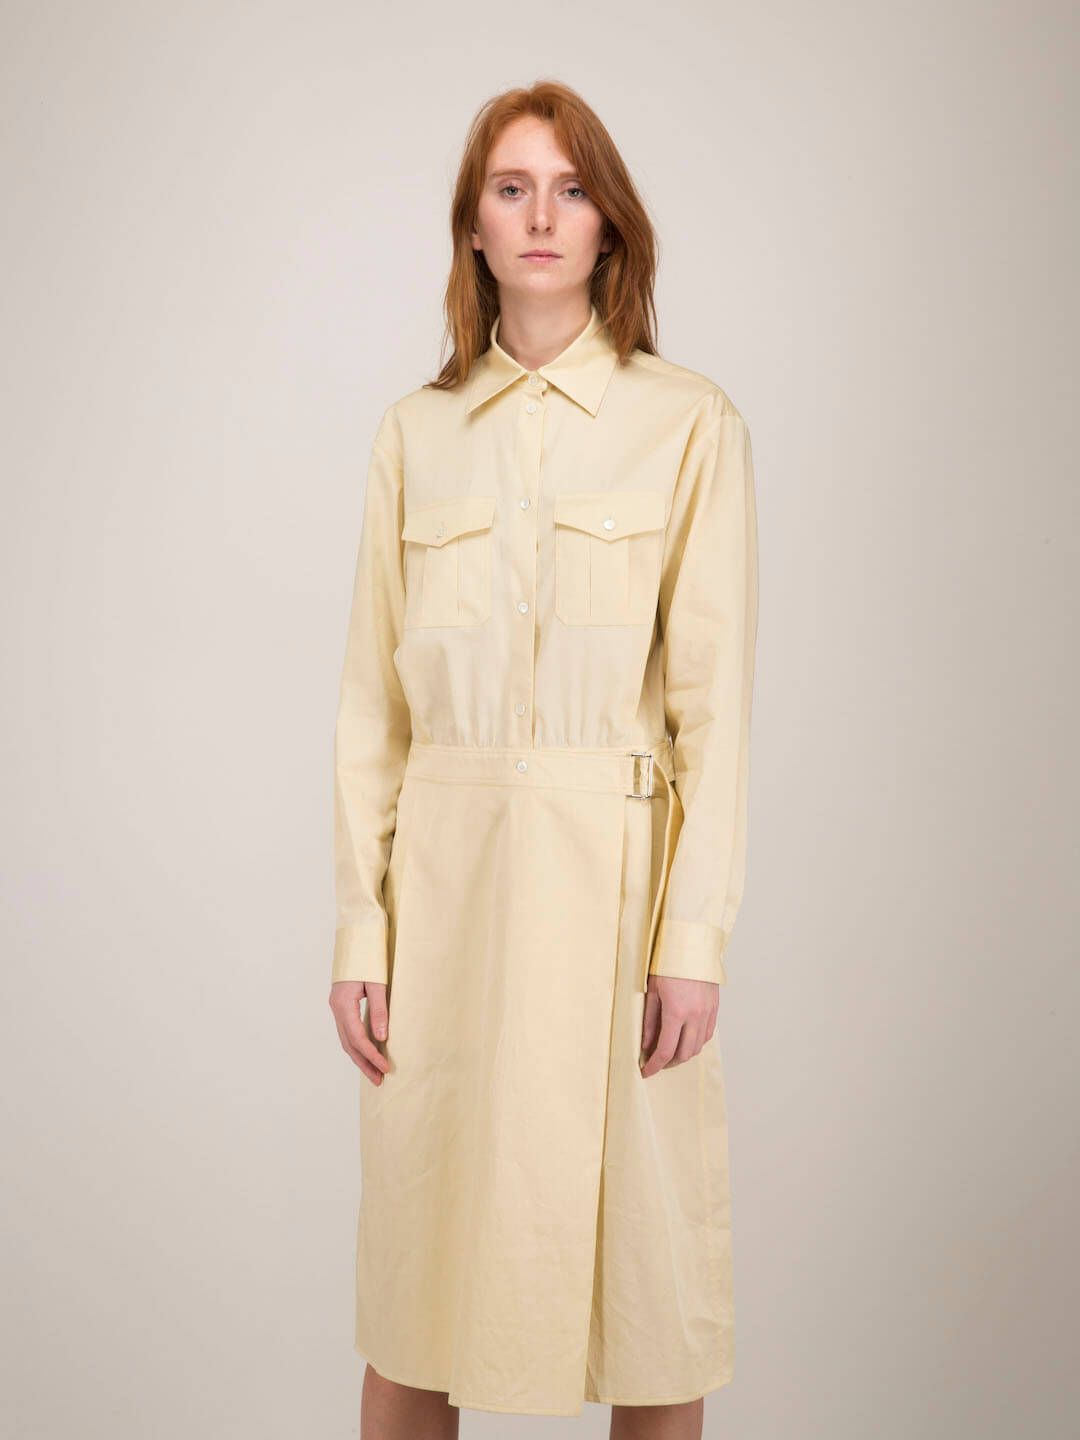 Lemaire 2POCKETS DRESS CREAM